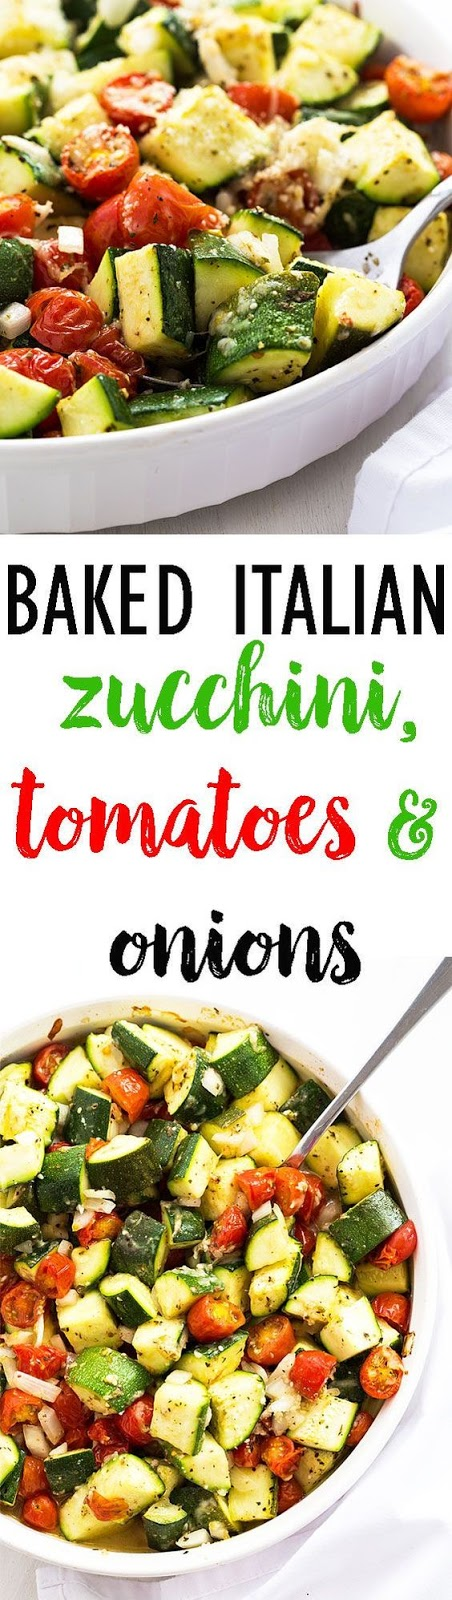 Today I'm sharing one of my new favorite veggie recipes:  Baked Italian Zucchini, Tomatoes and Onions.  It's so healthy, hearty and filling!  Sign up for my free email subscription and never miss a recipe.